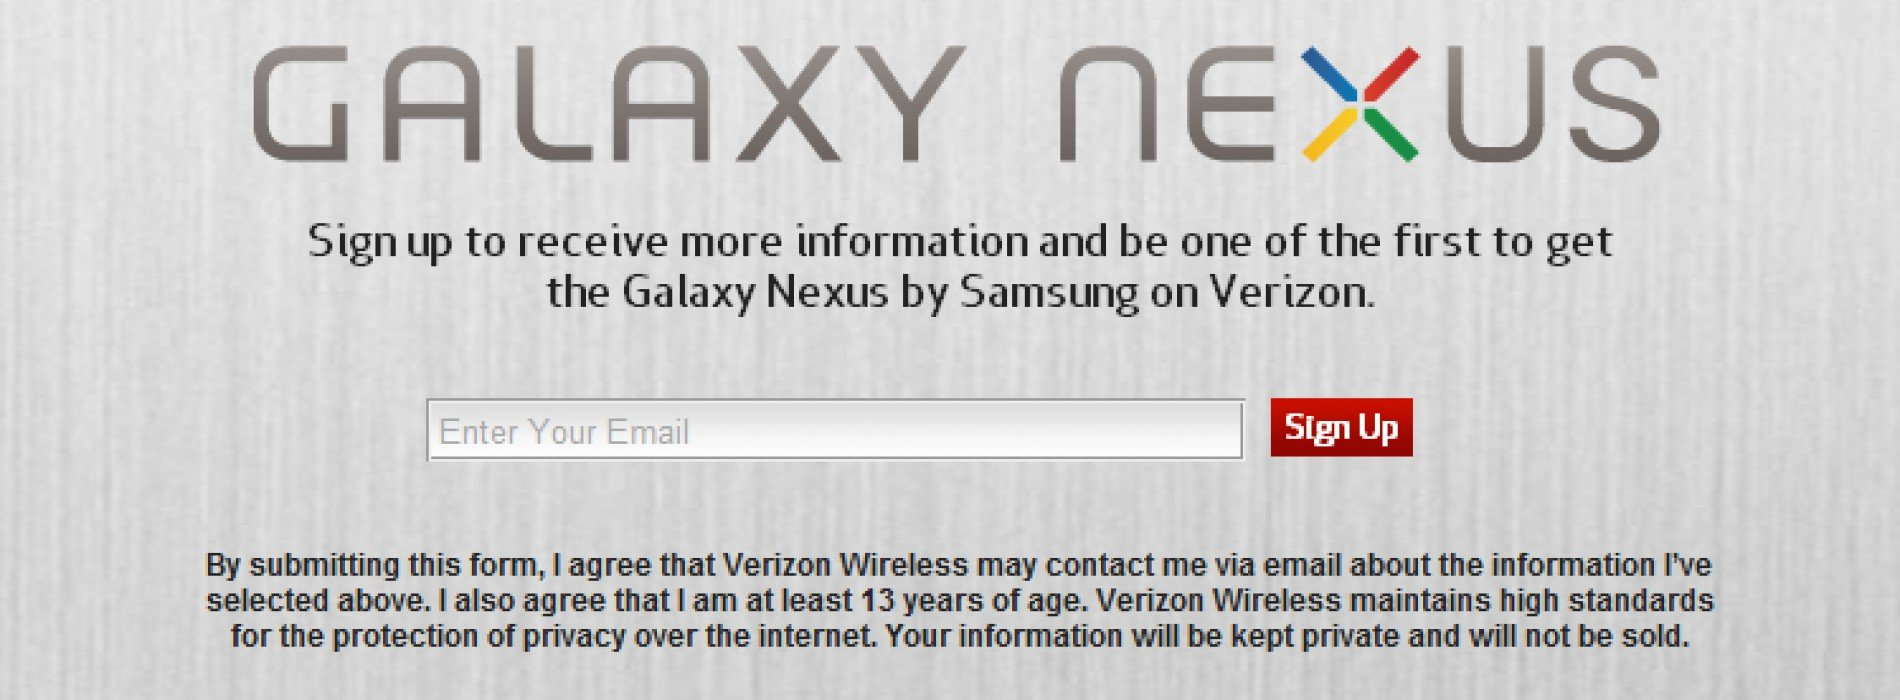 Verizon's Galaxy Nexus sign-up page goes live